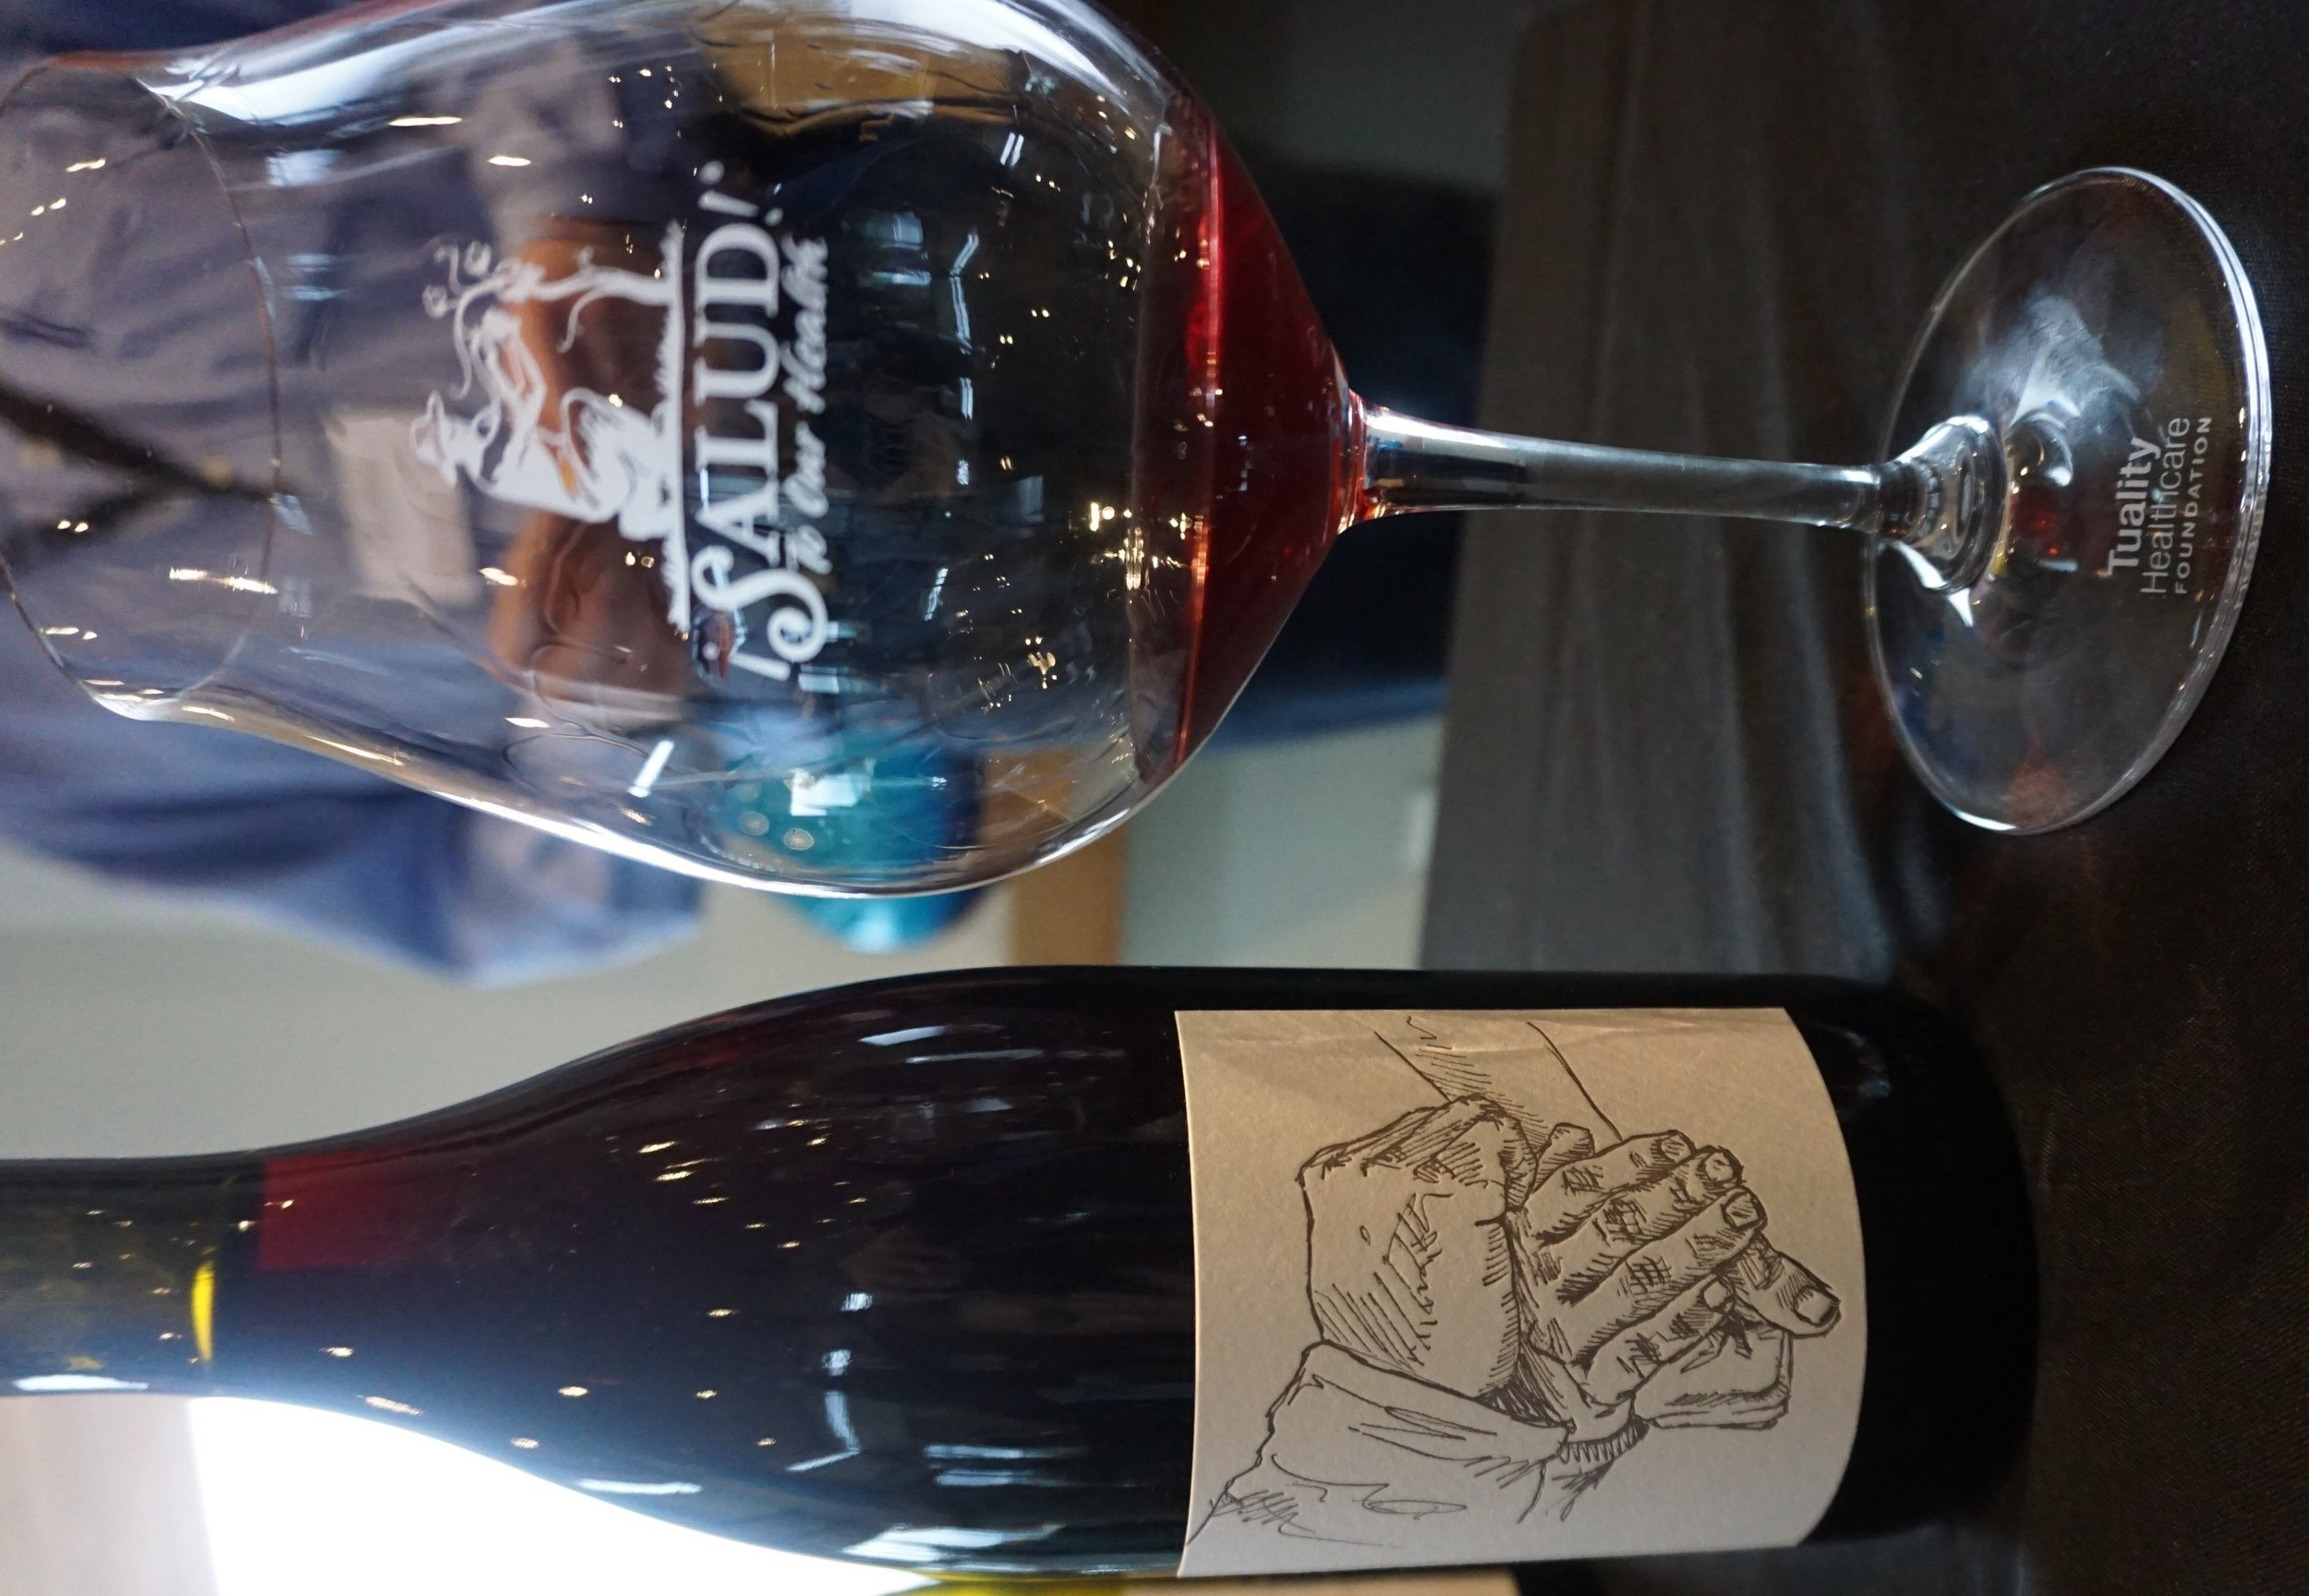 Winemakers like Brian Marcy of Big Table Farm poured exclusive cuvées during November's Oregon Pinot Noir Auction. This wine label, designed by Clare Carver, is a rendering of the vineyard worker who picked the grapes for their ¡Salud! cuvée. Viki Eierdam